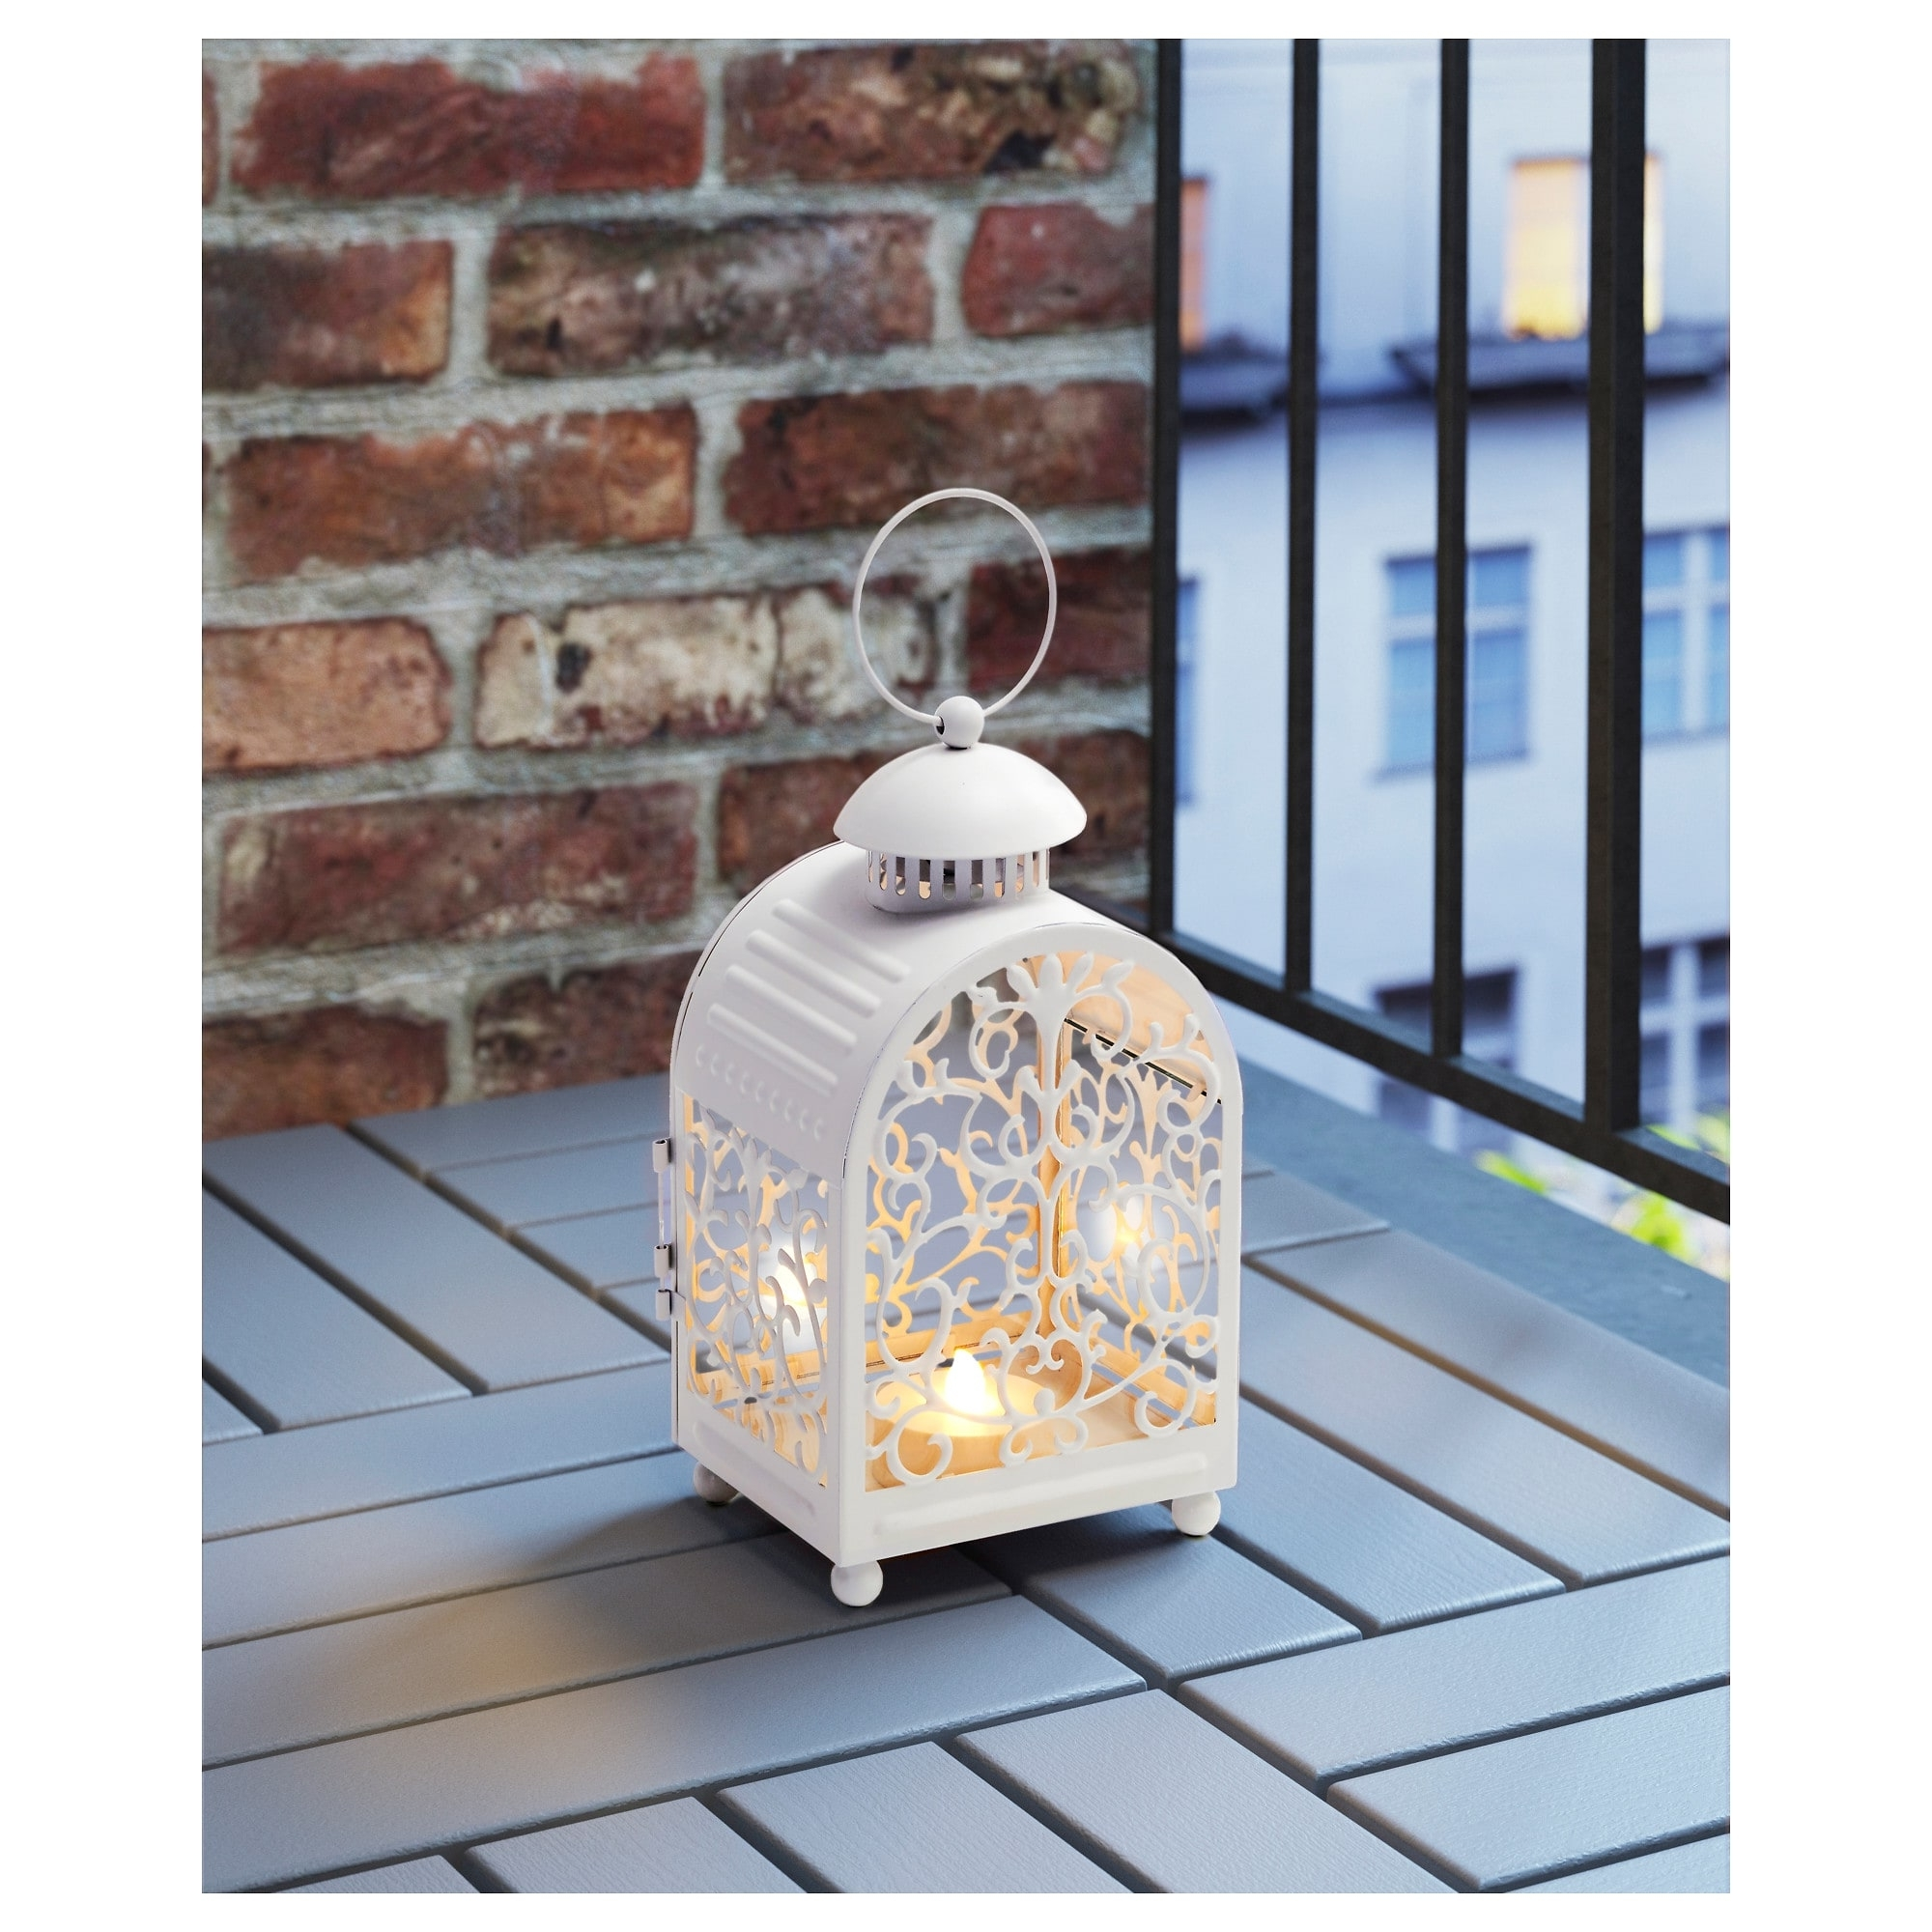 Most Recently Released Gottgöra Lantern For Candle In Metal Cup In/outdoor White 26 Cm – Ikea Inside Ikea Outdoor Lanterns (View 7 of 20)